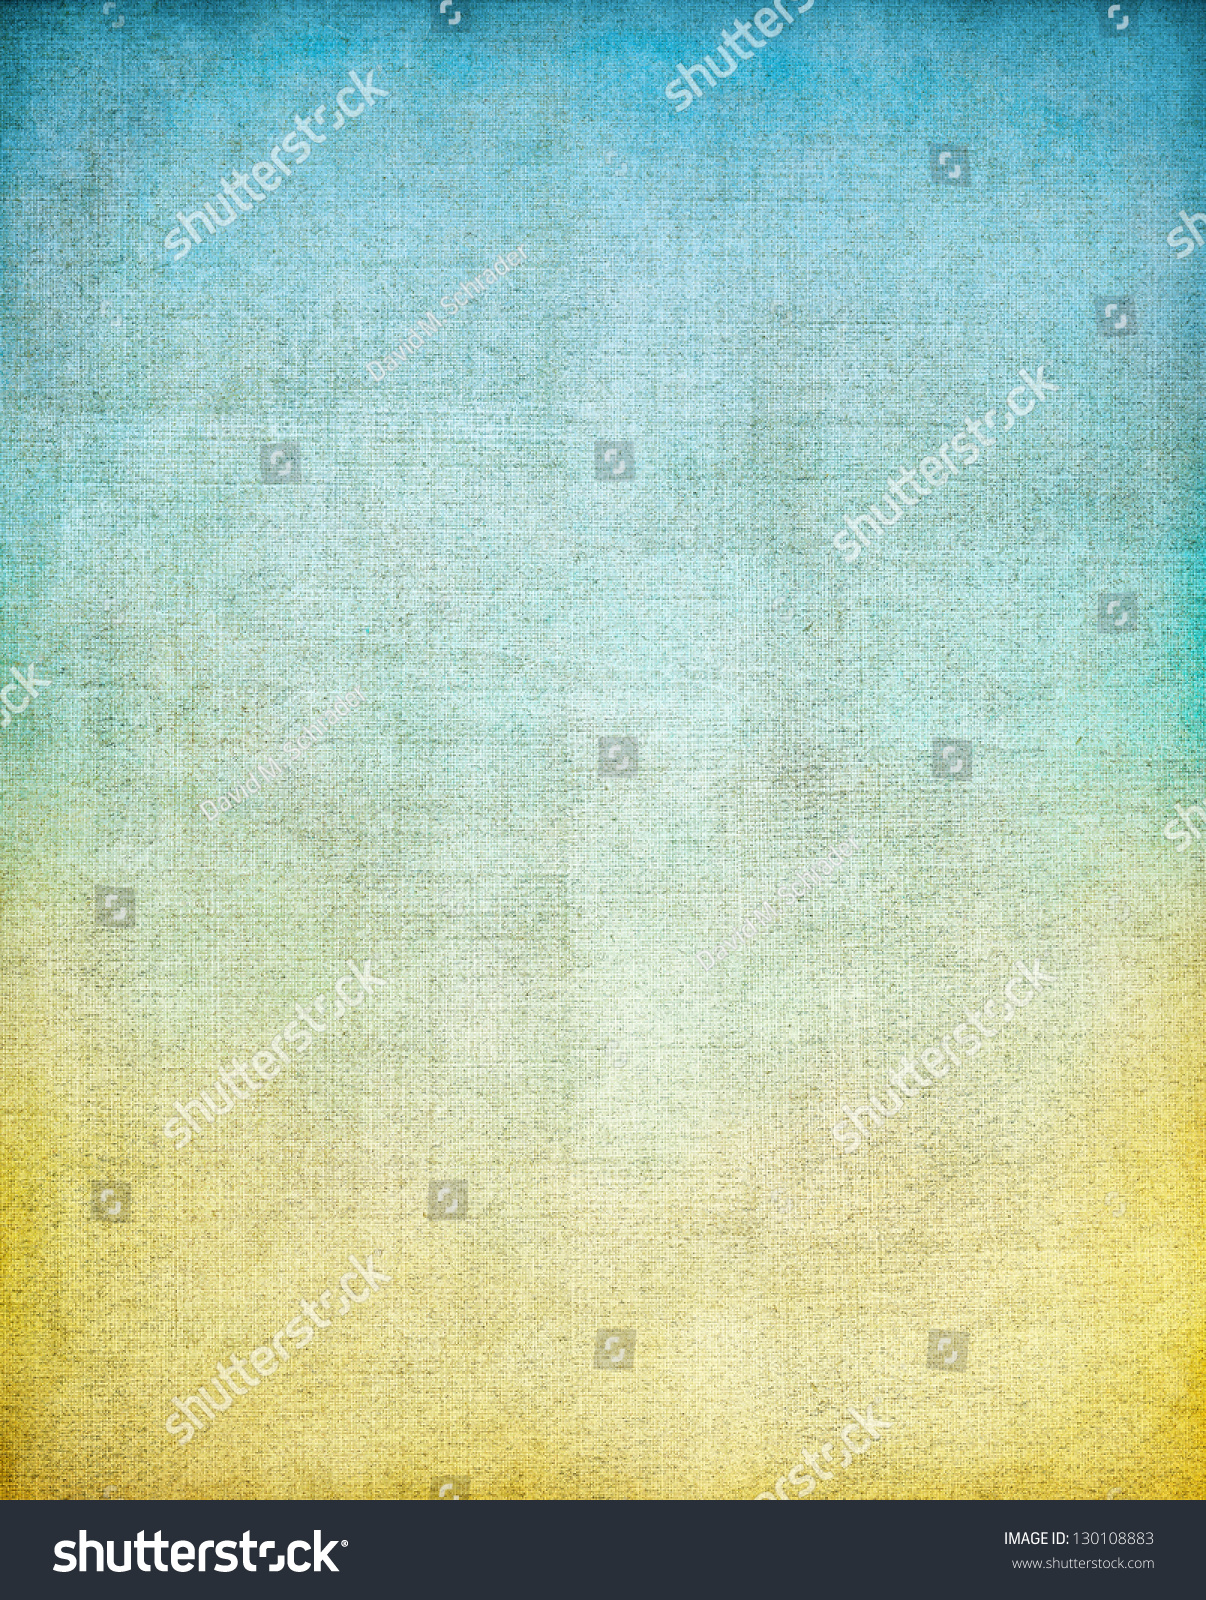 Book Cover Background Color : A vintage cloth book cover with screen pattern color